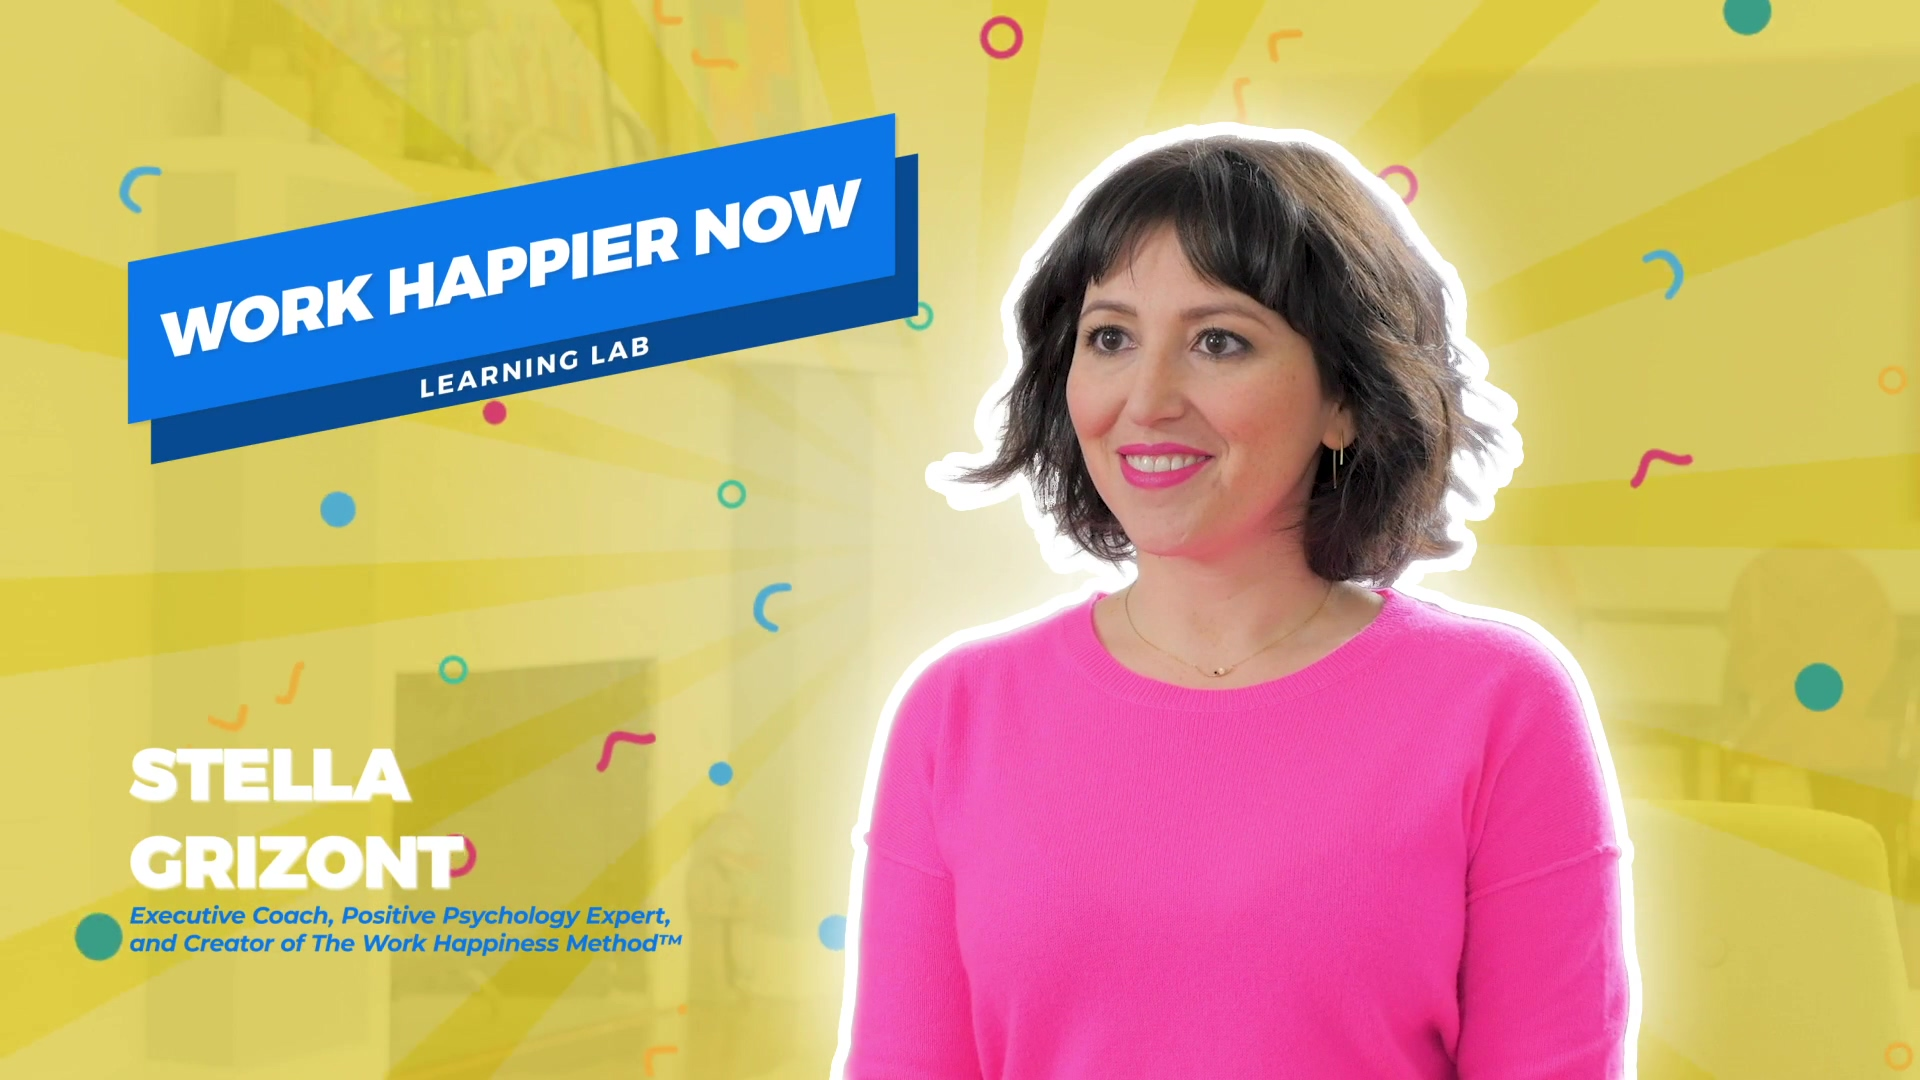 Work Happier Now Teaser